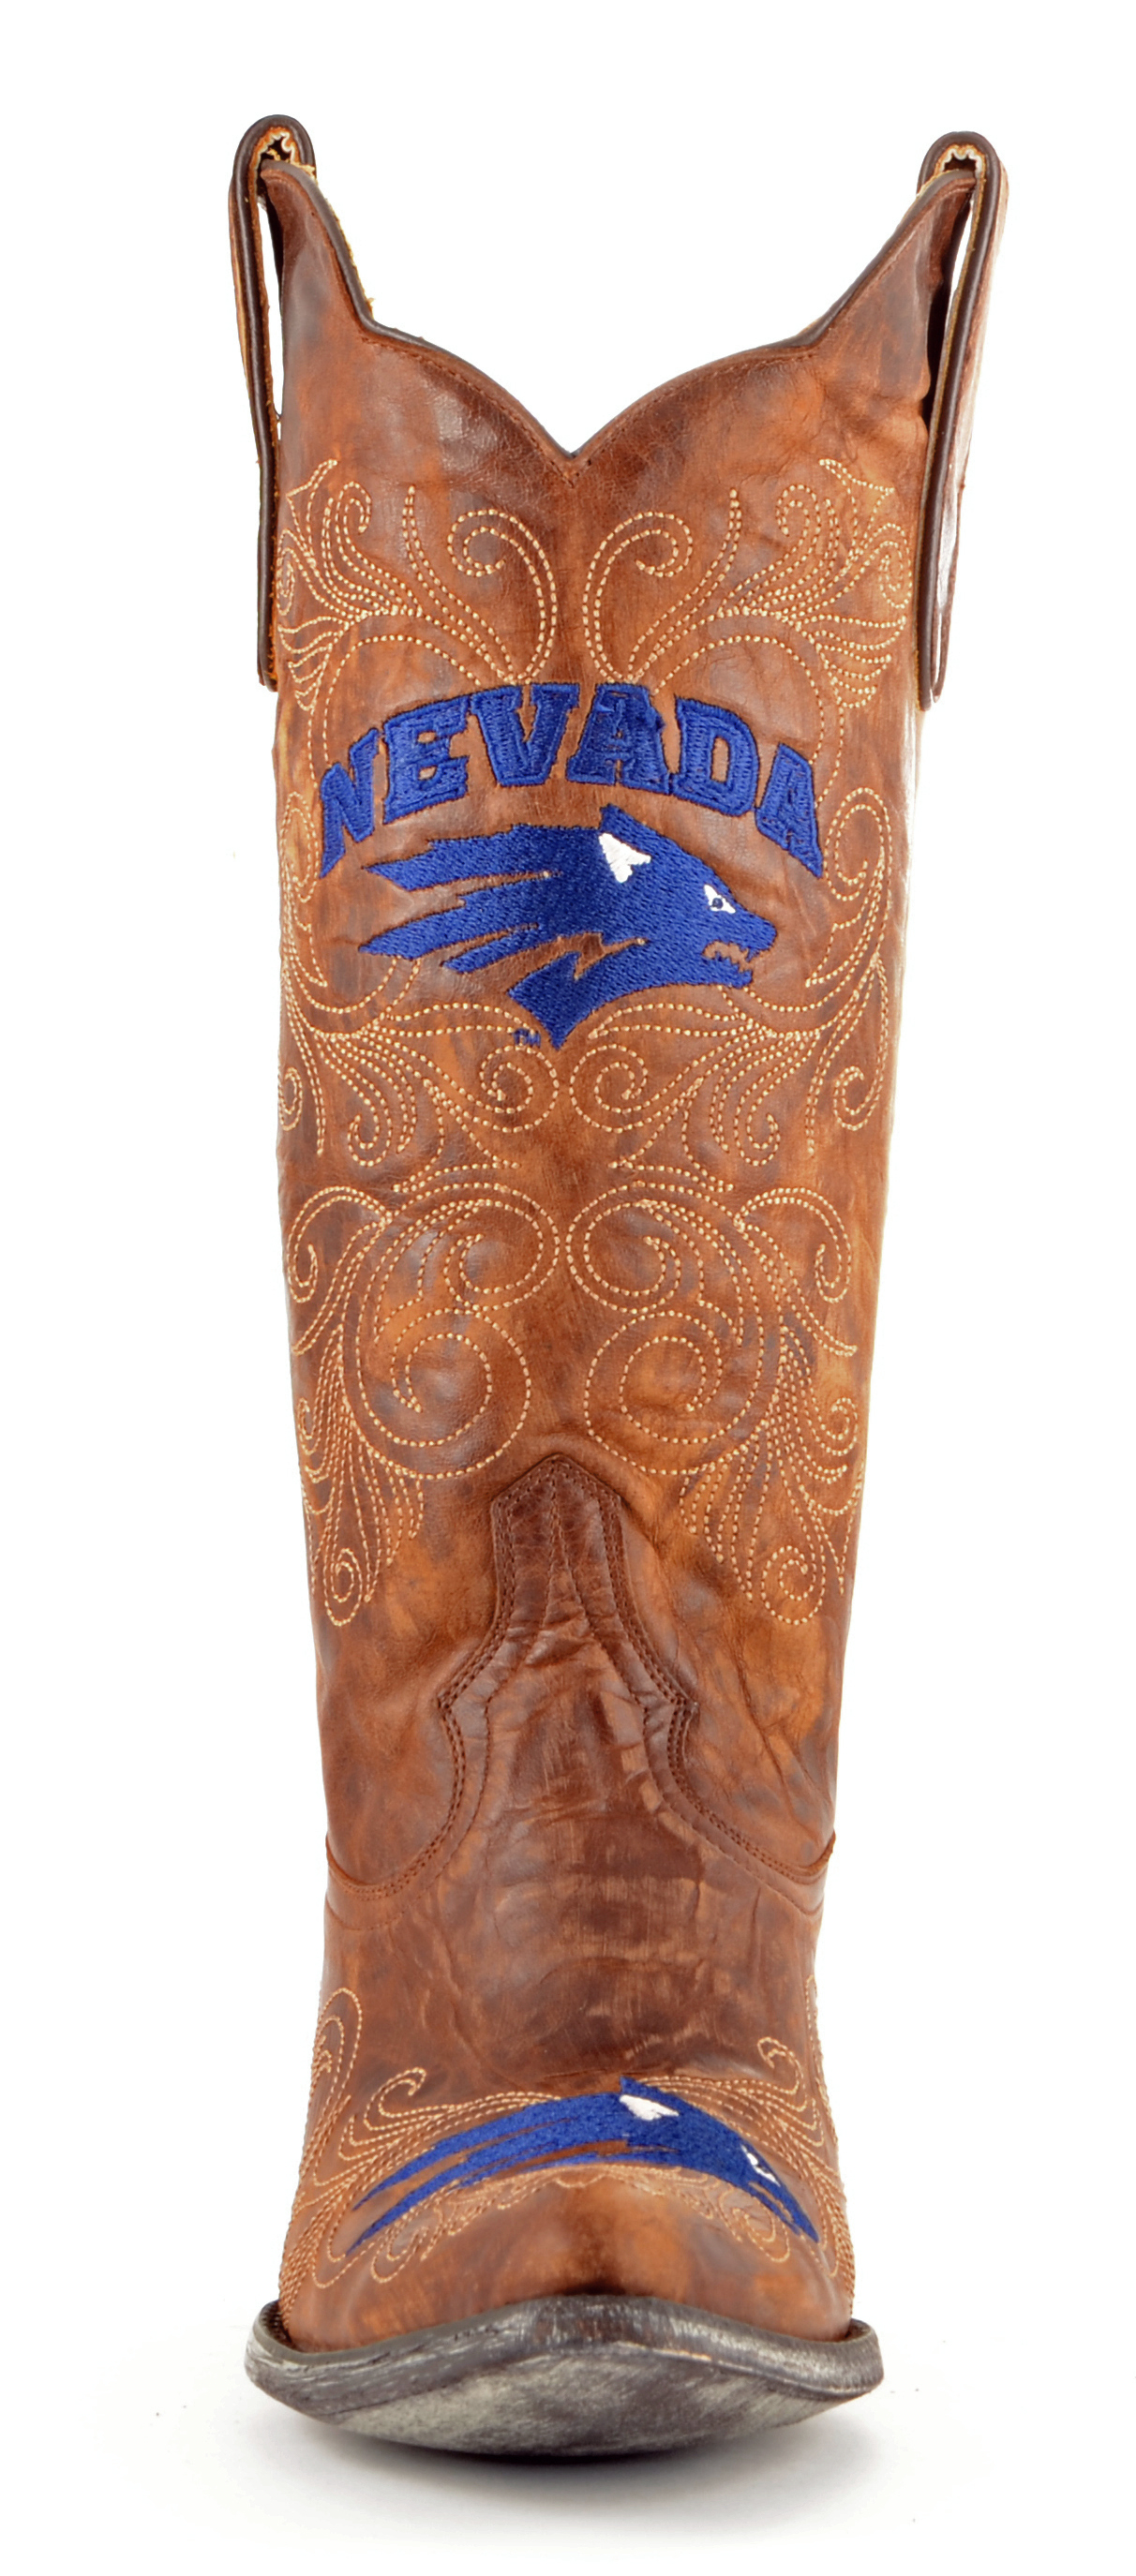 "Gameday Boots Nevada Women 13"" Tall Brass Leather University Of Nevada Boots Cowboy Boots 6.5 353eaa"